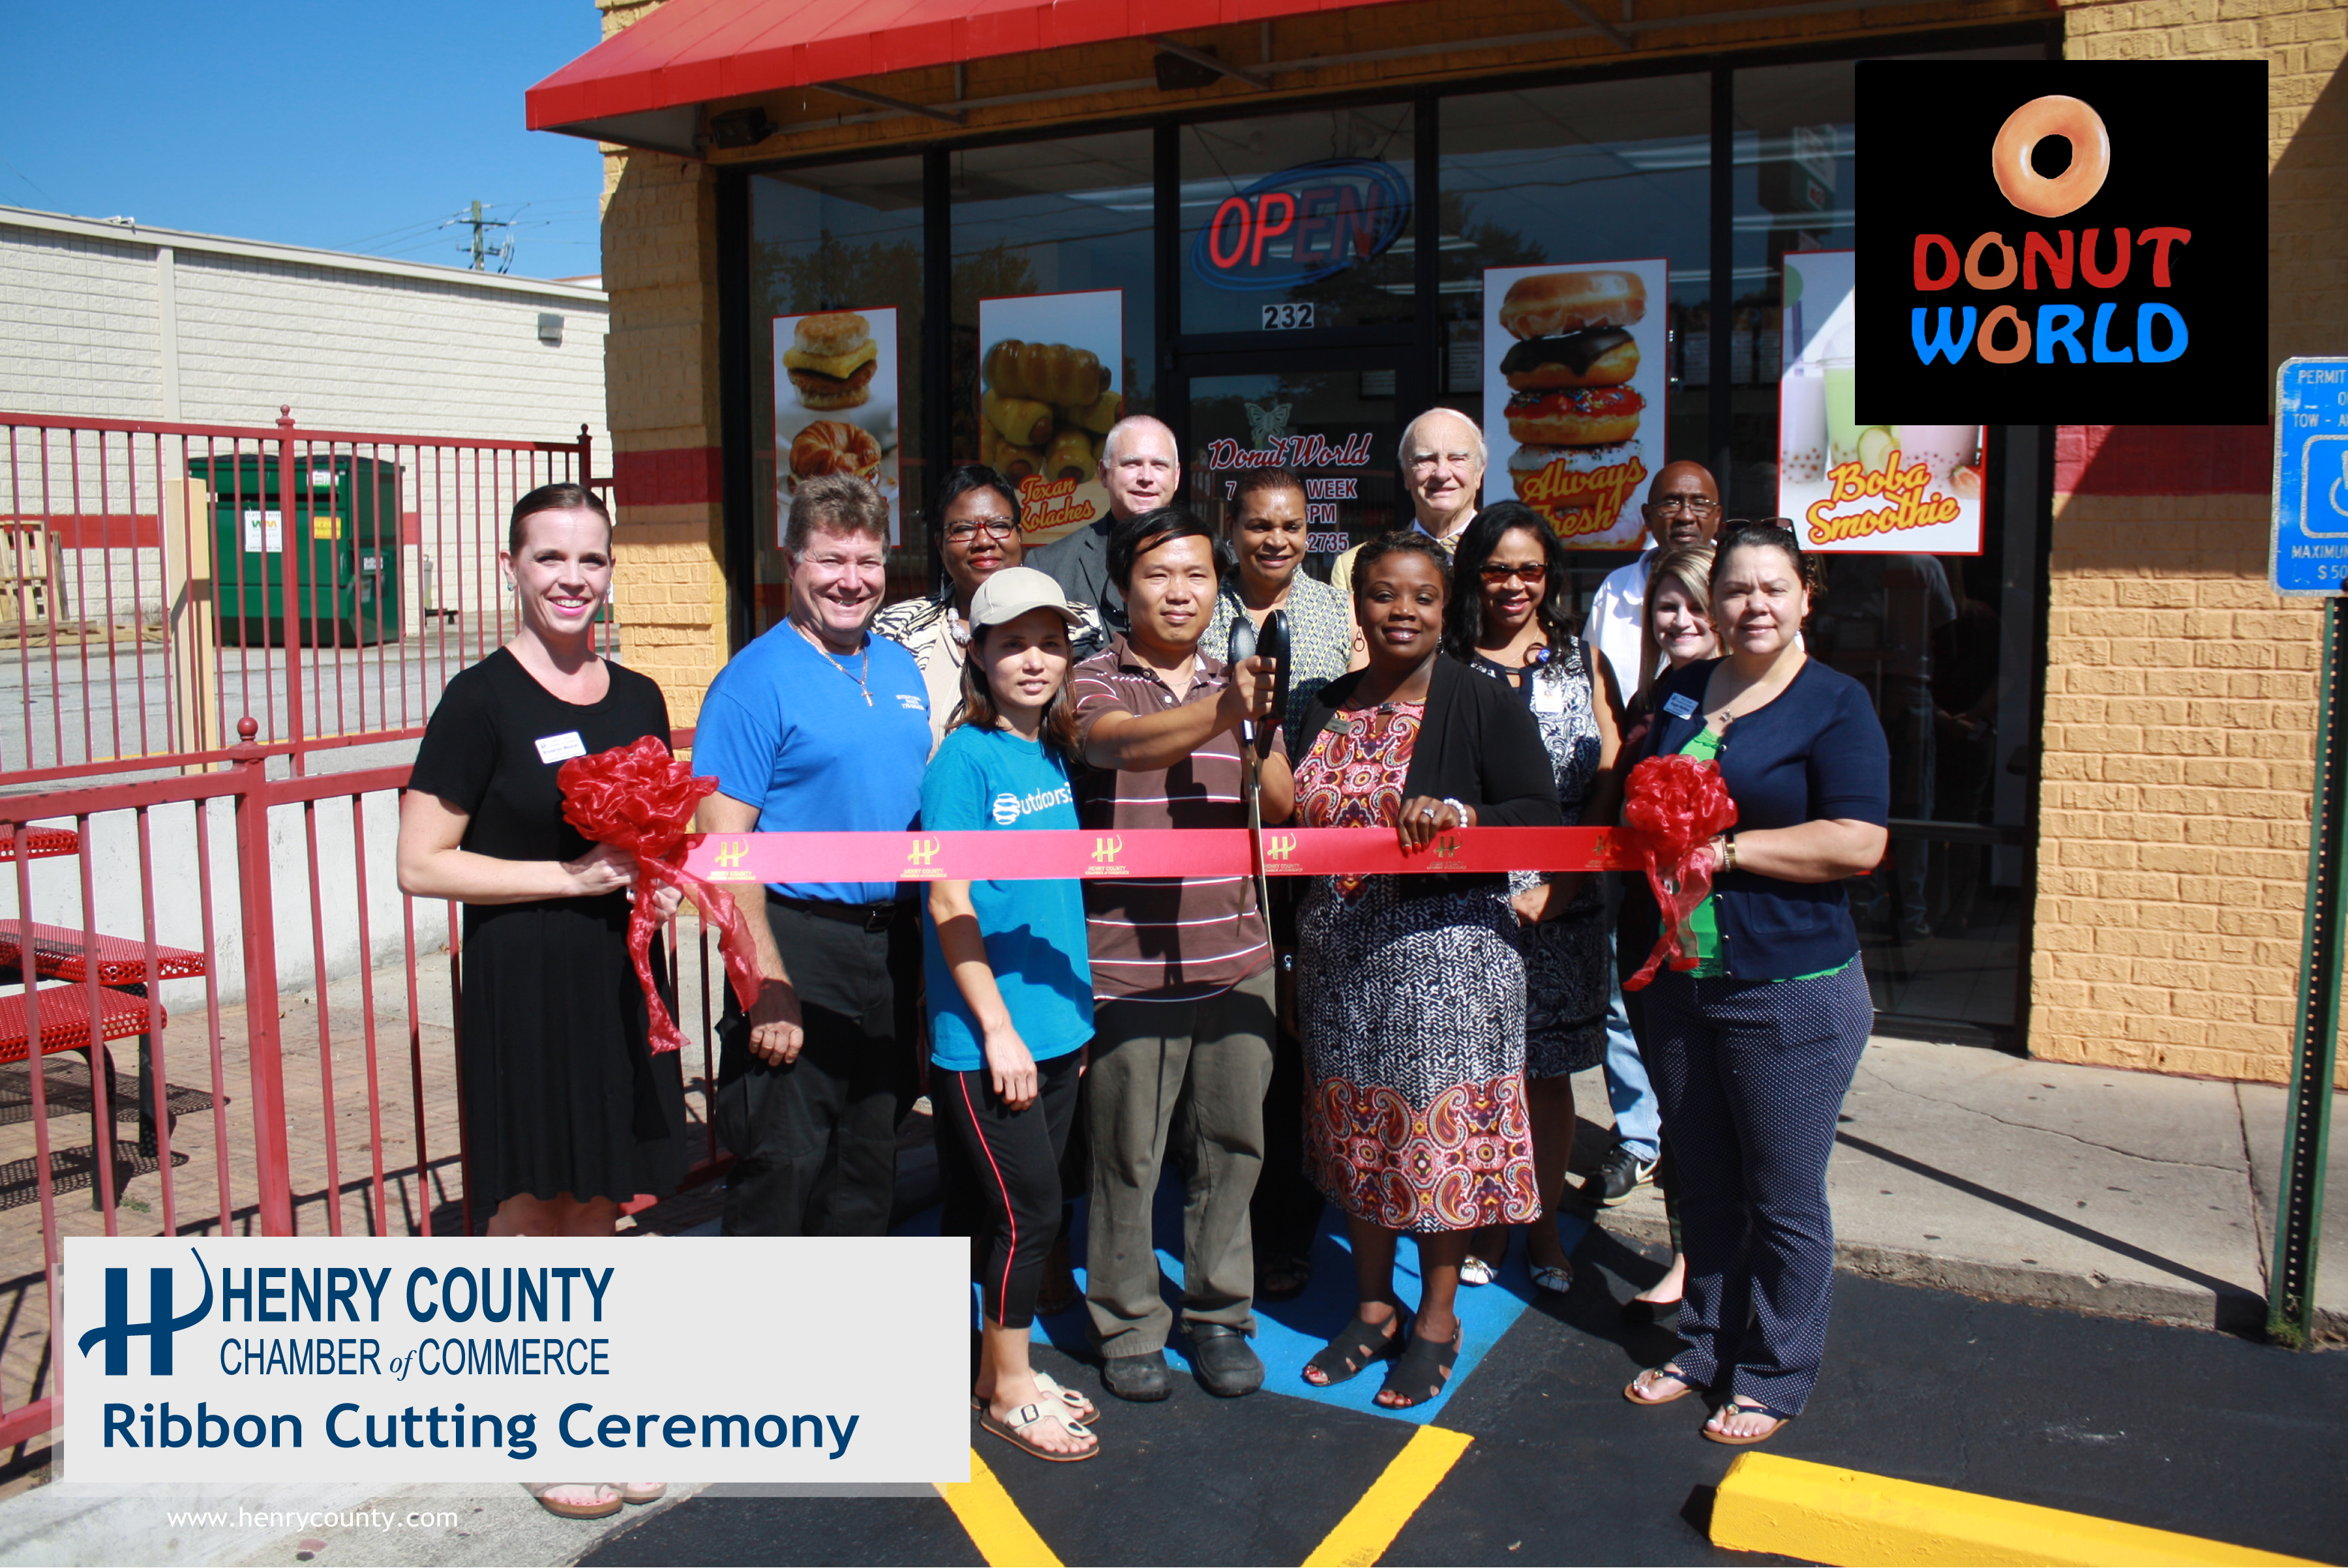 HCCC Ribbon Cutting for Donut World